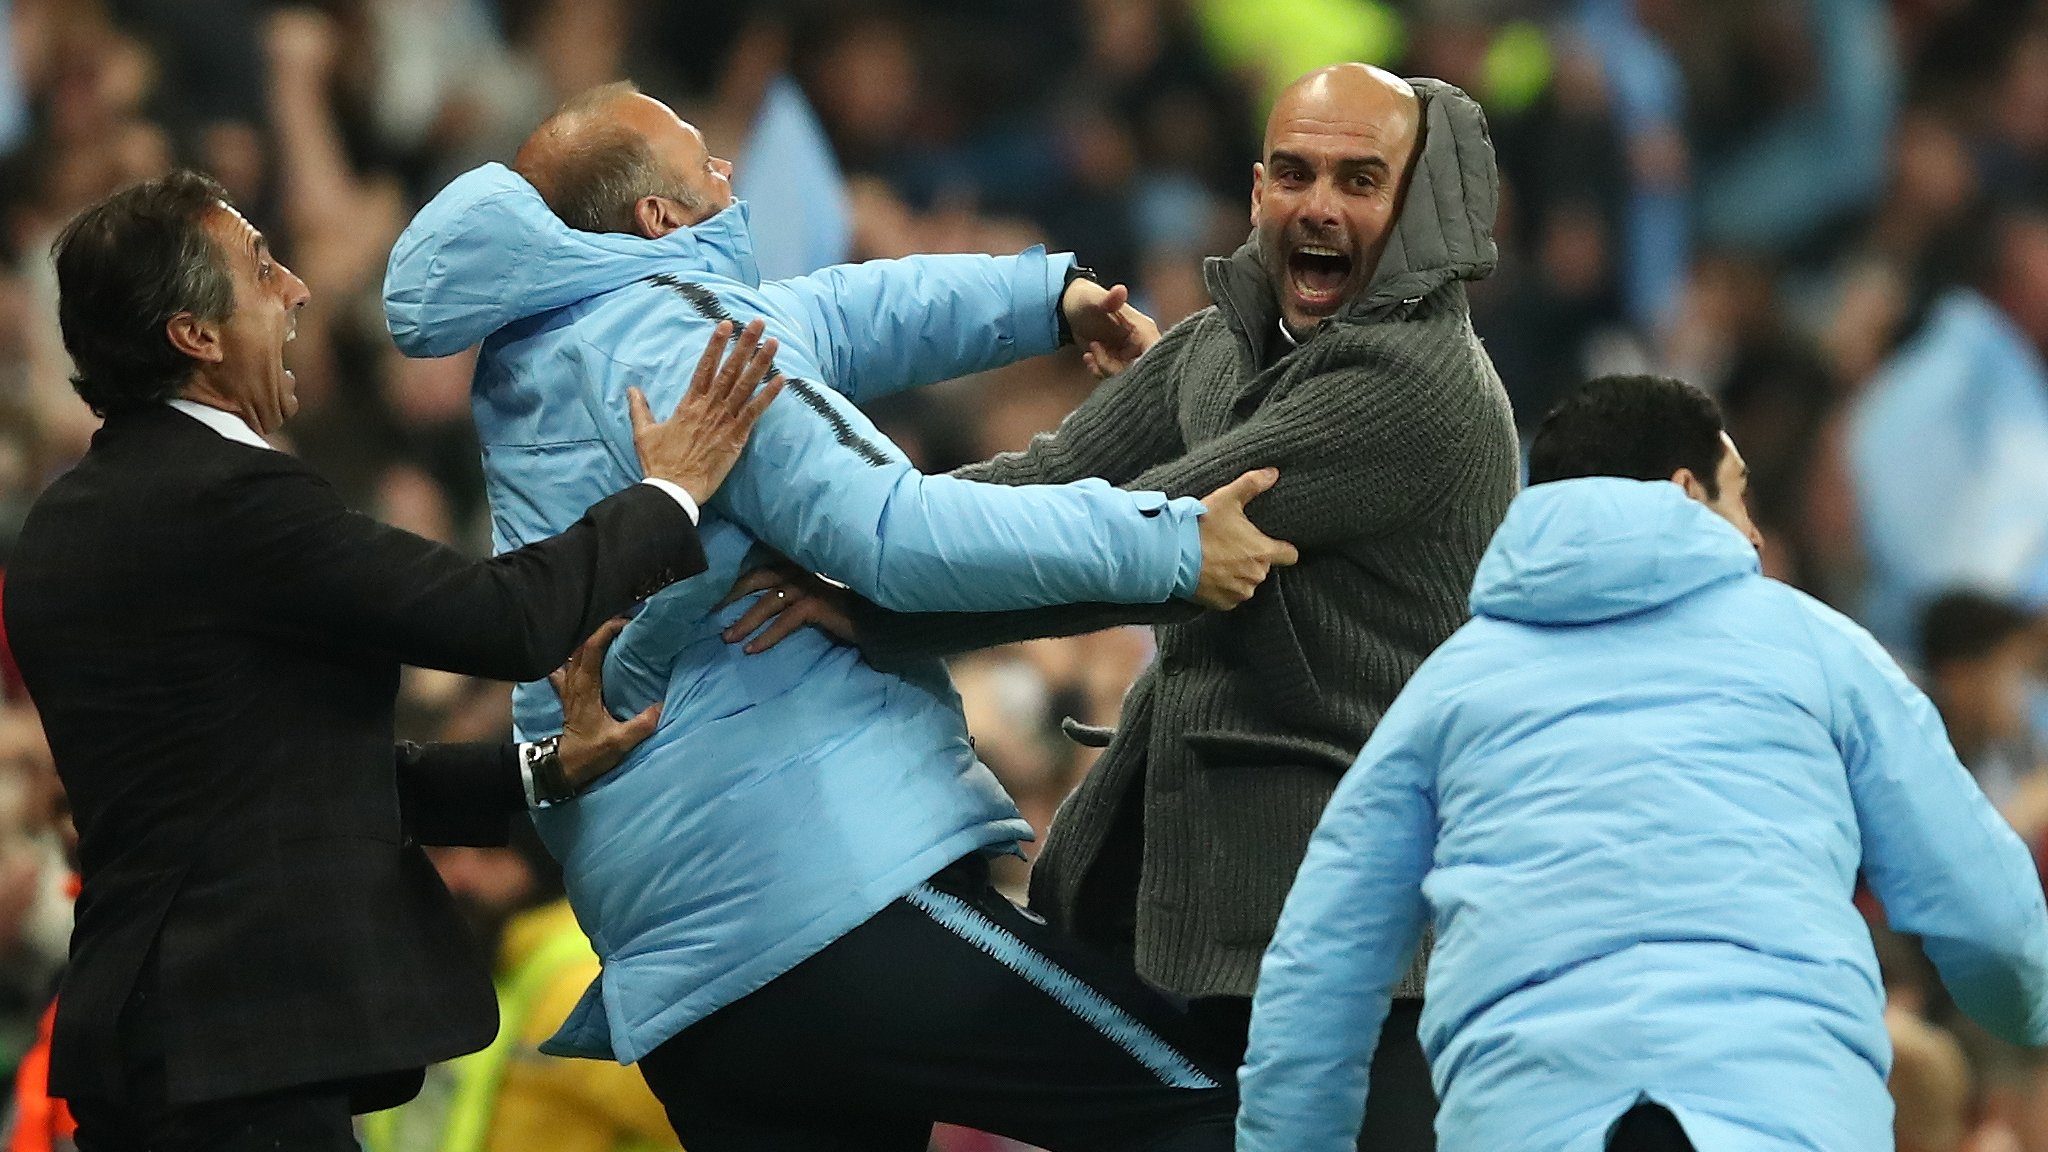 Champions League without VAR: Man City joy, despair for Man Utd & Spurs?